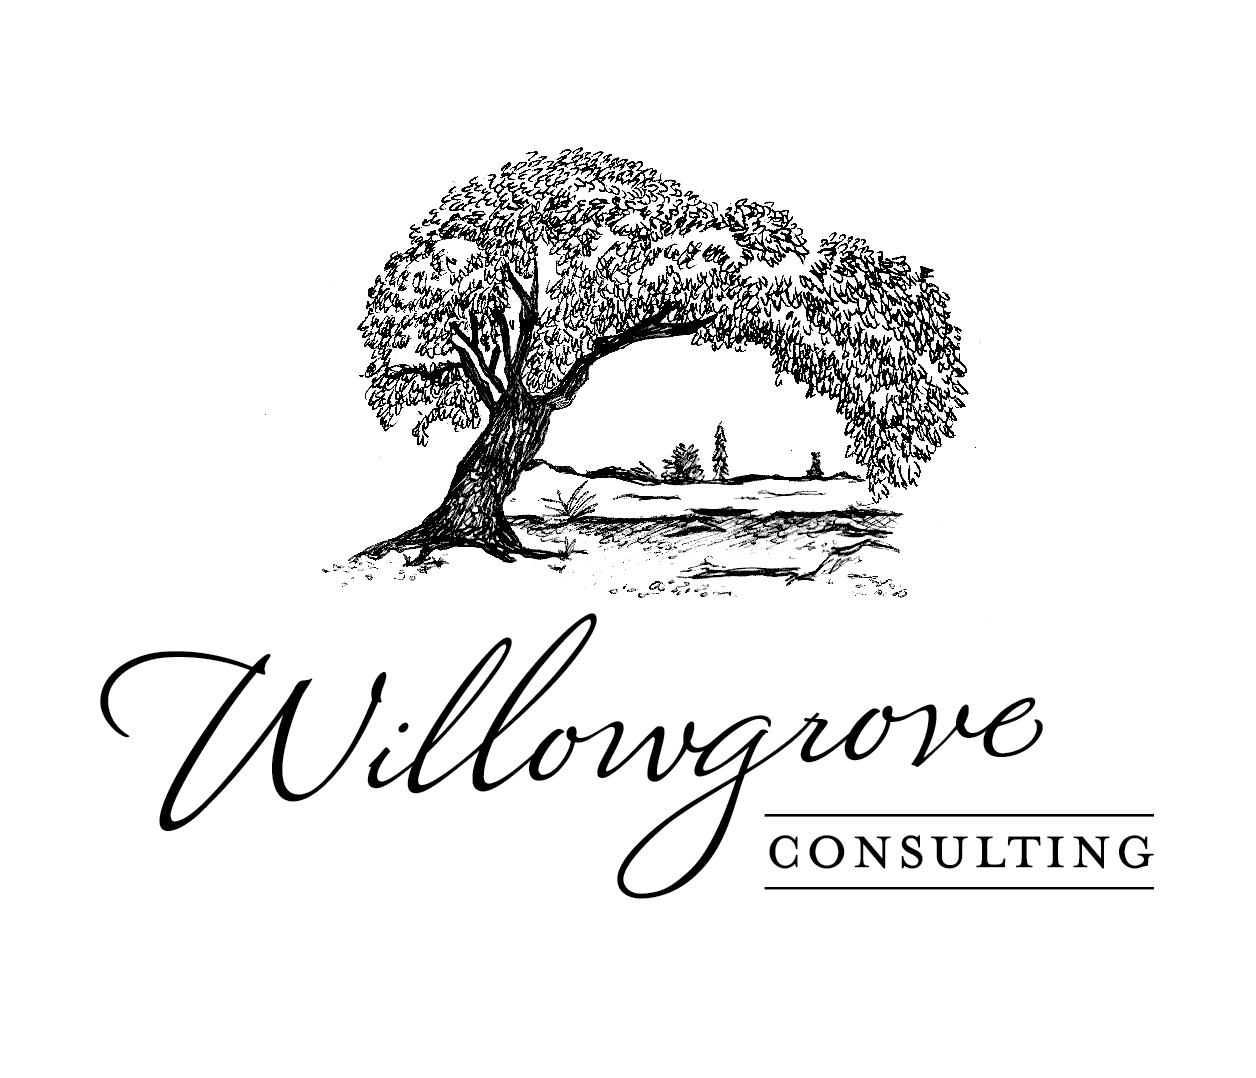 willow grove consulting.jpg